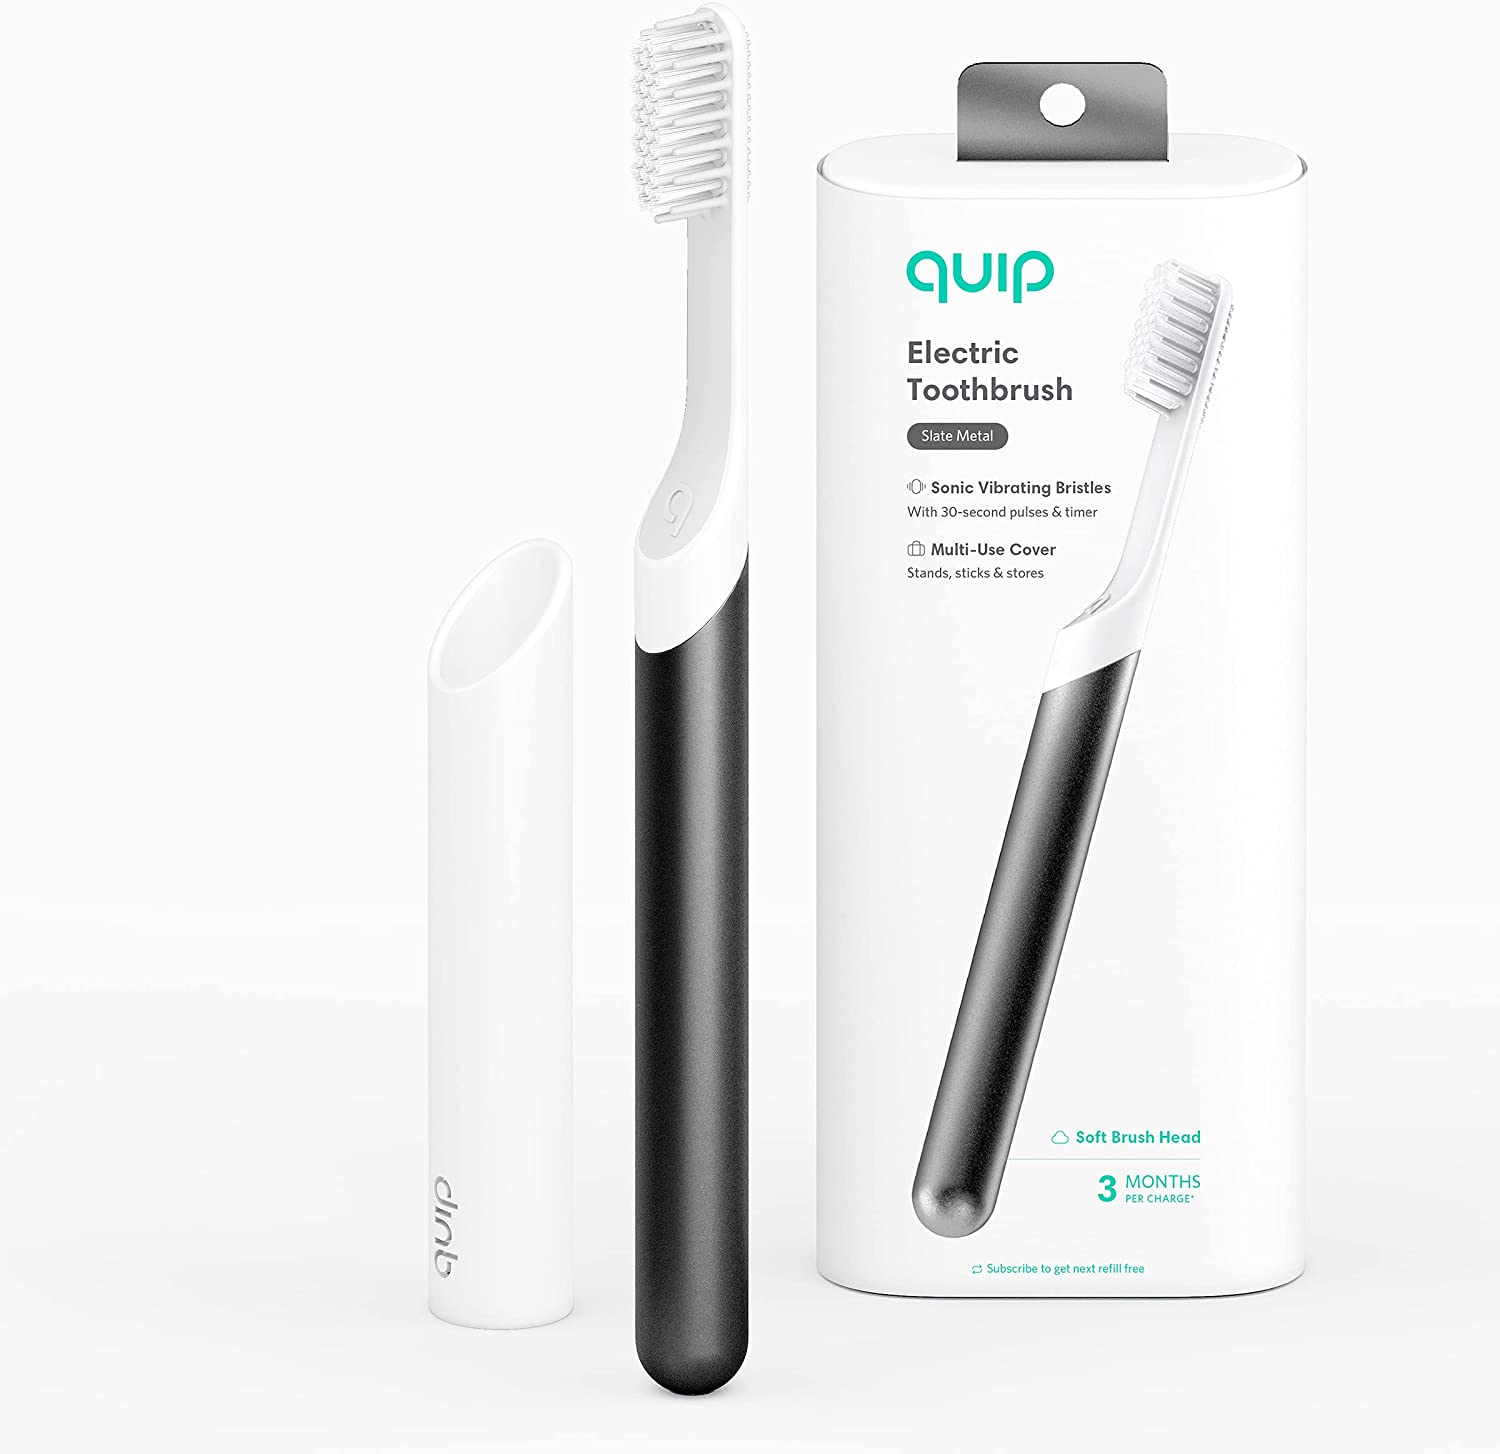 Quip Electric Toothbrush - Max 79% Topics on TV OFF Slate Brush and Metal Trav